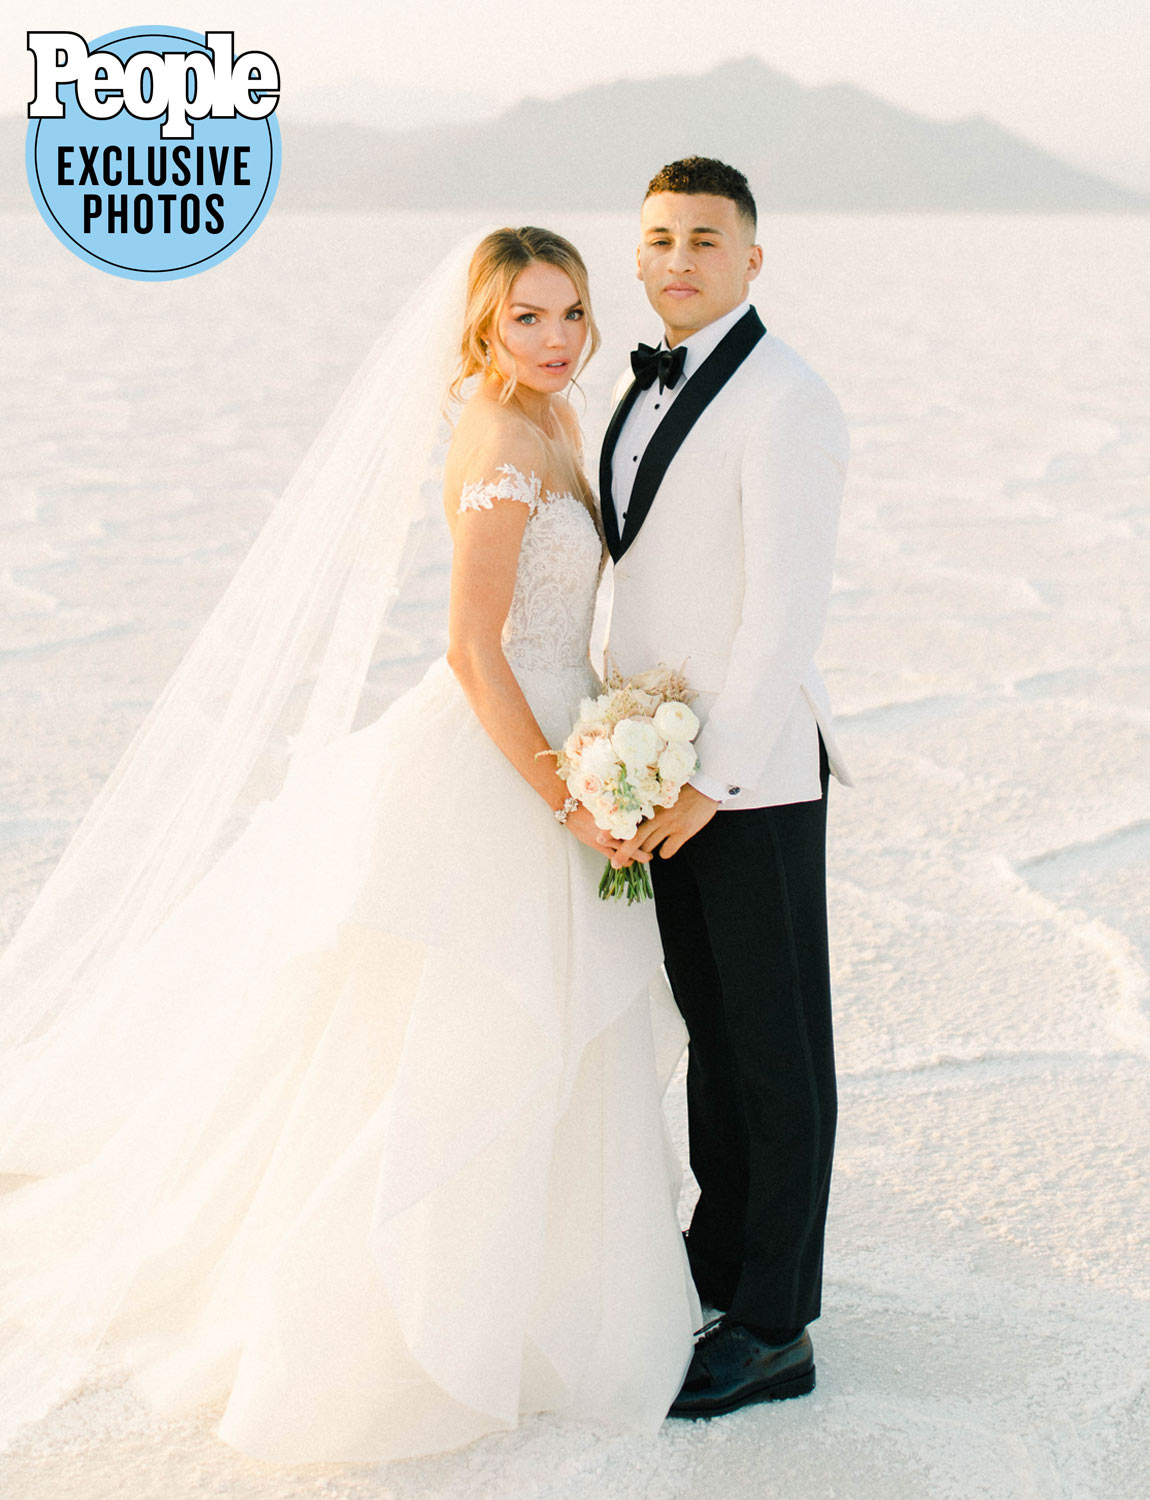 """Hawkins just lept into married life.                             The American track and field athlete married longtime love O'Neal III on Sept. 27, PEOPLE confirmed exclusively.                             The happy couple, who met in 2010 in a training group for theUtah State University track and field team and got engaged in May 2017, said """"I do"""" at River Bottoms Ranch in Midway, Utah.                             Hawkins said she and O'Neal III were tested for coronavirus before and after the indoor and outdoor event, which was limited to just close family and friends due to the COVID-19 pandemic. Temperature checks were taken on-site, and guests were seated by household or family. All tables and seating areas were situated six-feet apart, and food was served plated. Sanitation stations were available throughout the venue and face masks were provided to those who arrived without.                             """"Our goal was to follow all state and county guidelines to ensure that we had a safe and successful event,"""" the heptathlete tells PEOPLE, noting, """"We also proactively created our wedding to be more static than interactive as an additional precaution."""""""